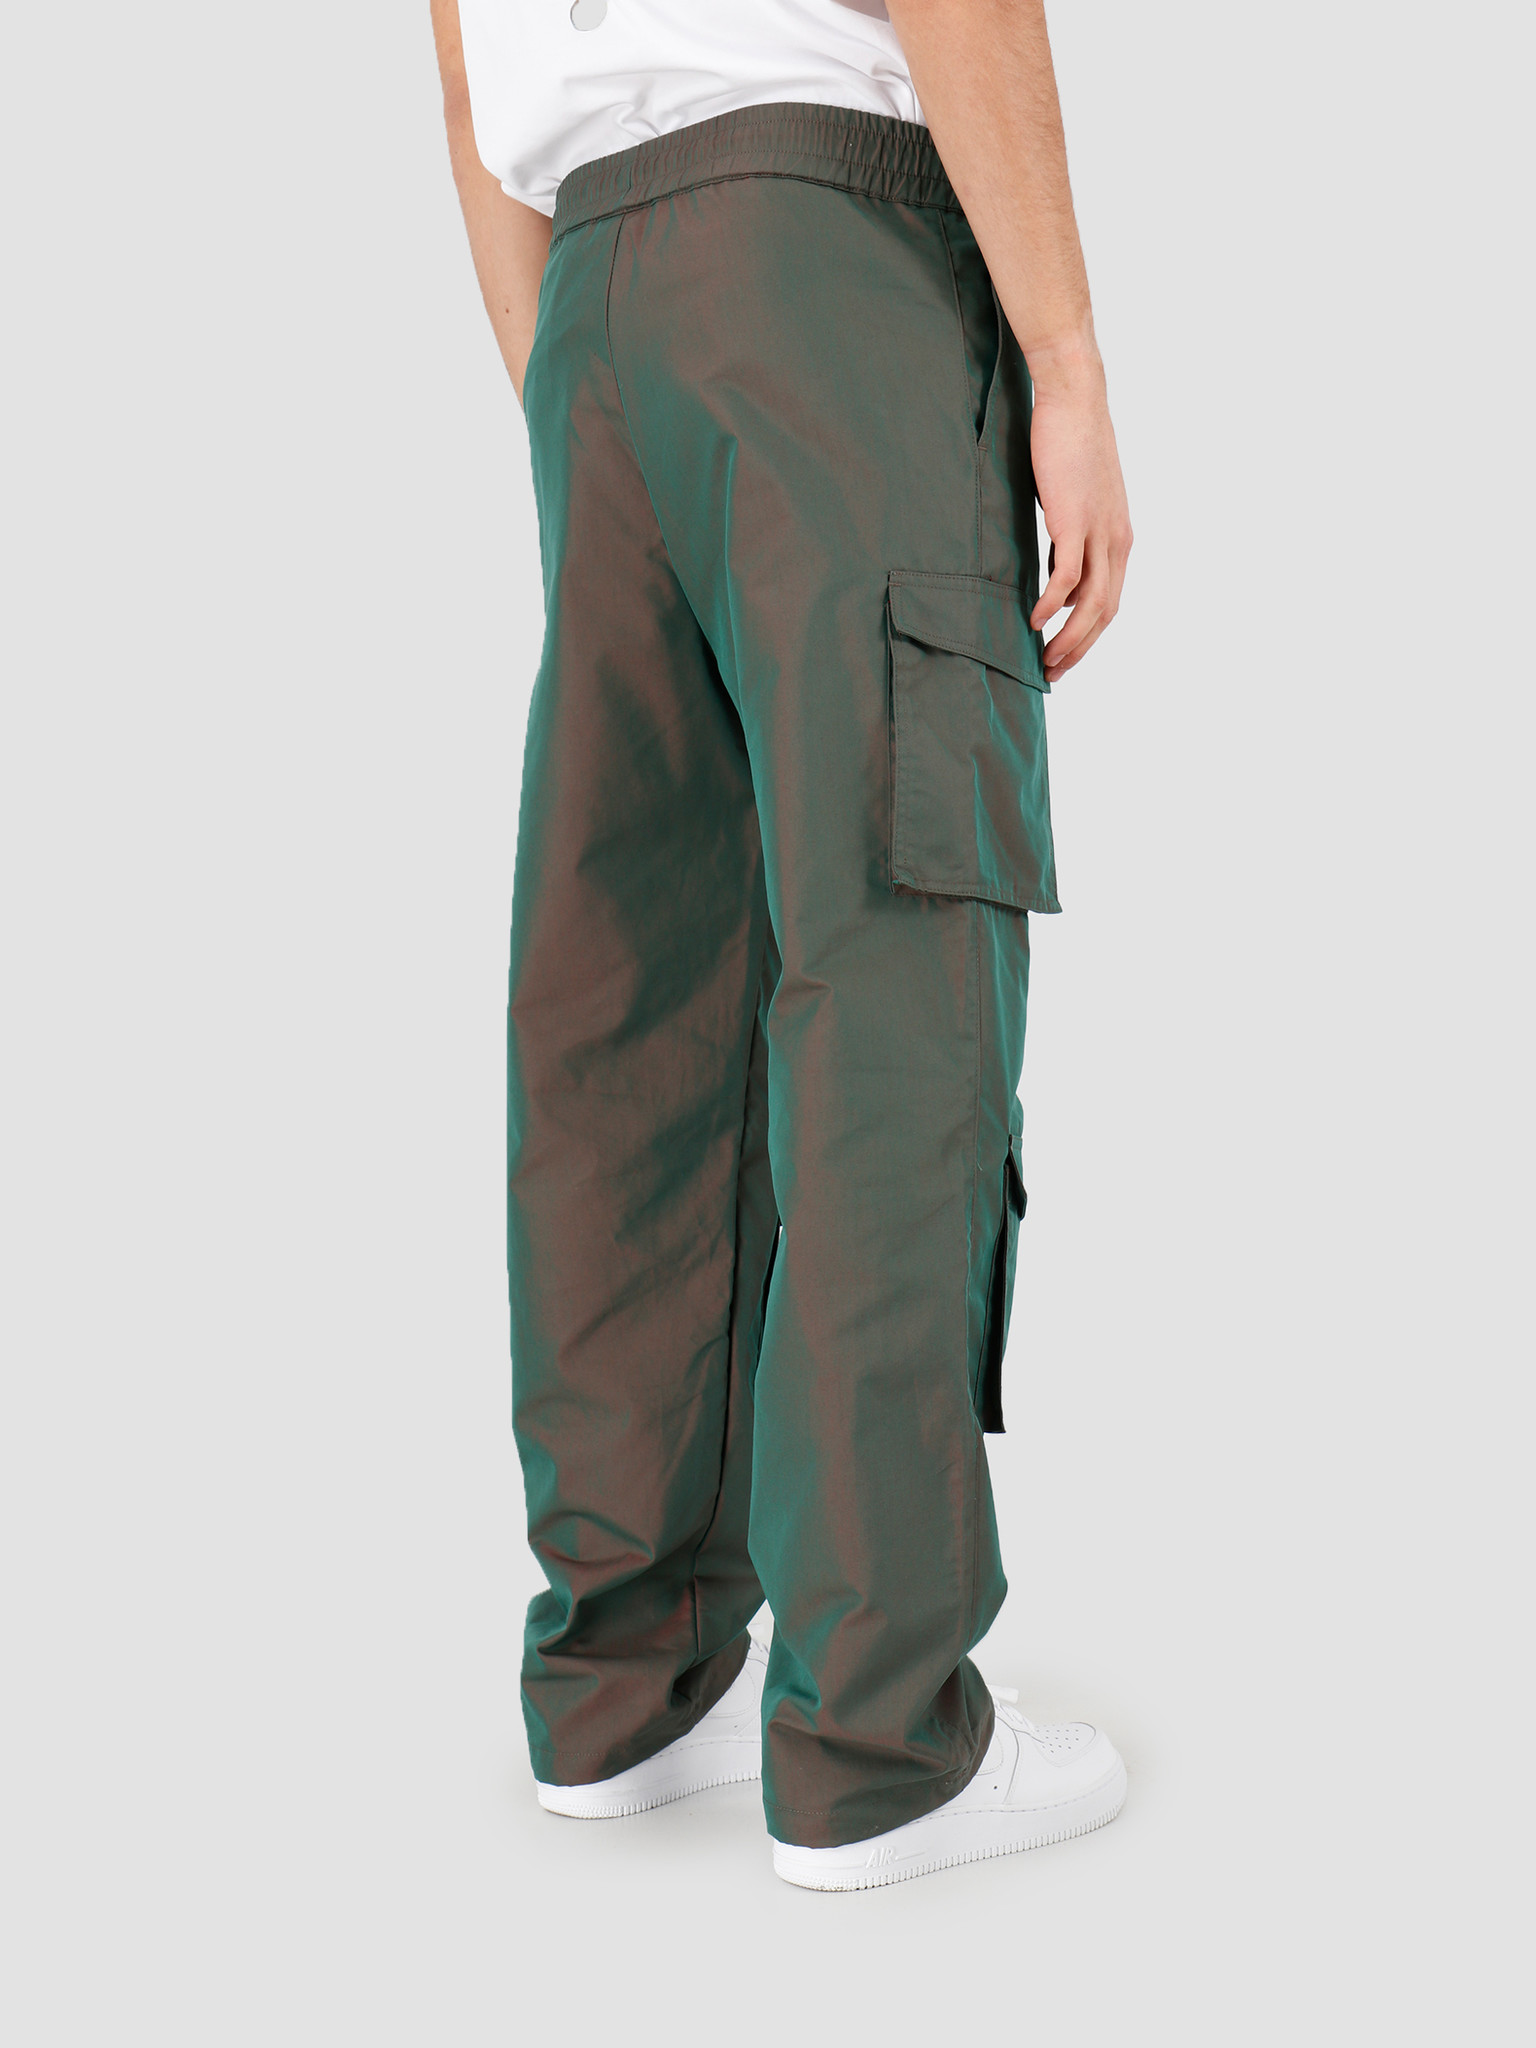 Daily Paper Daily Paper Haben Pant Green Red 20S1PA03-02